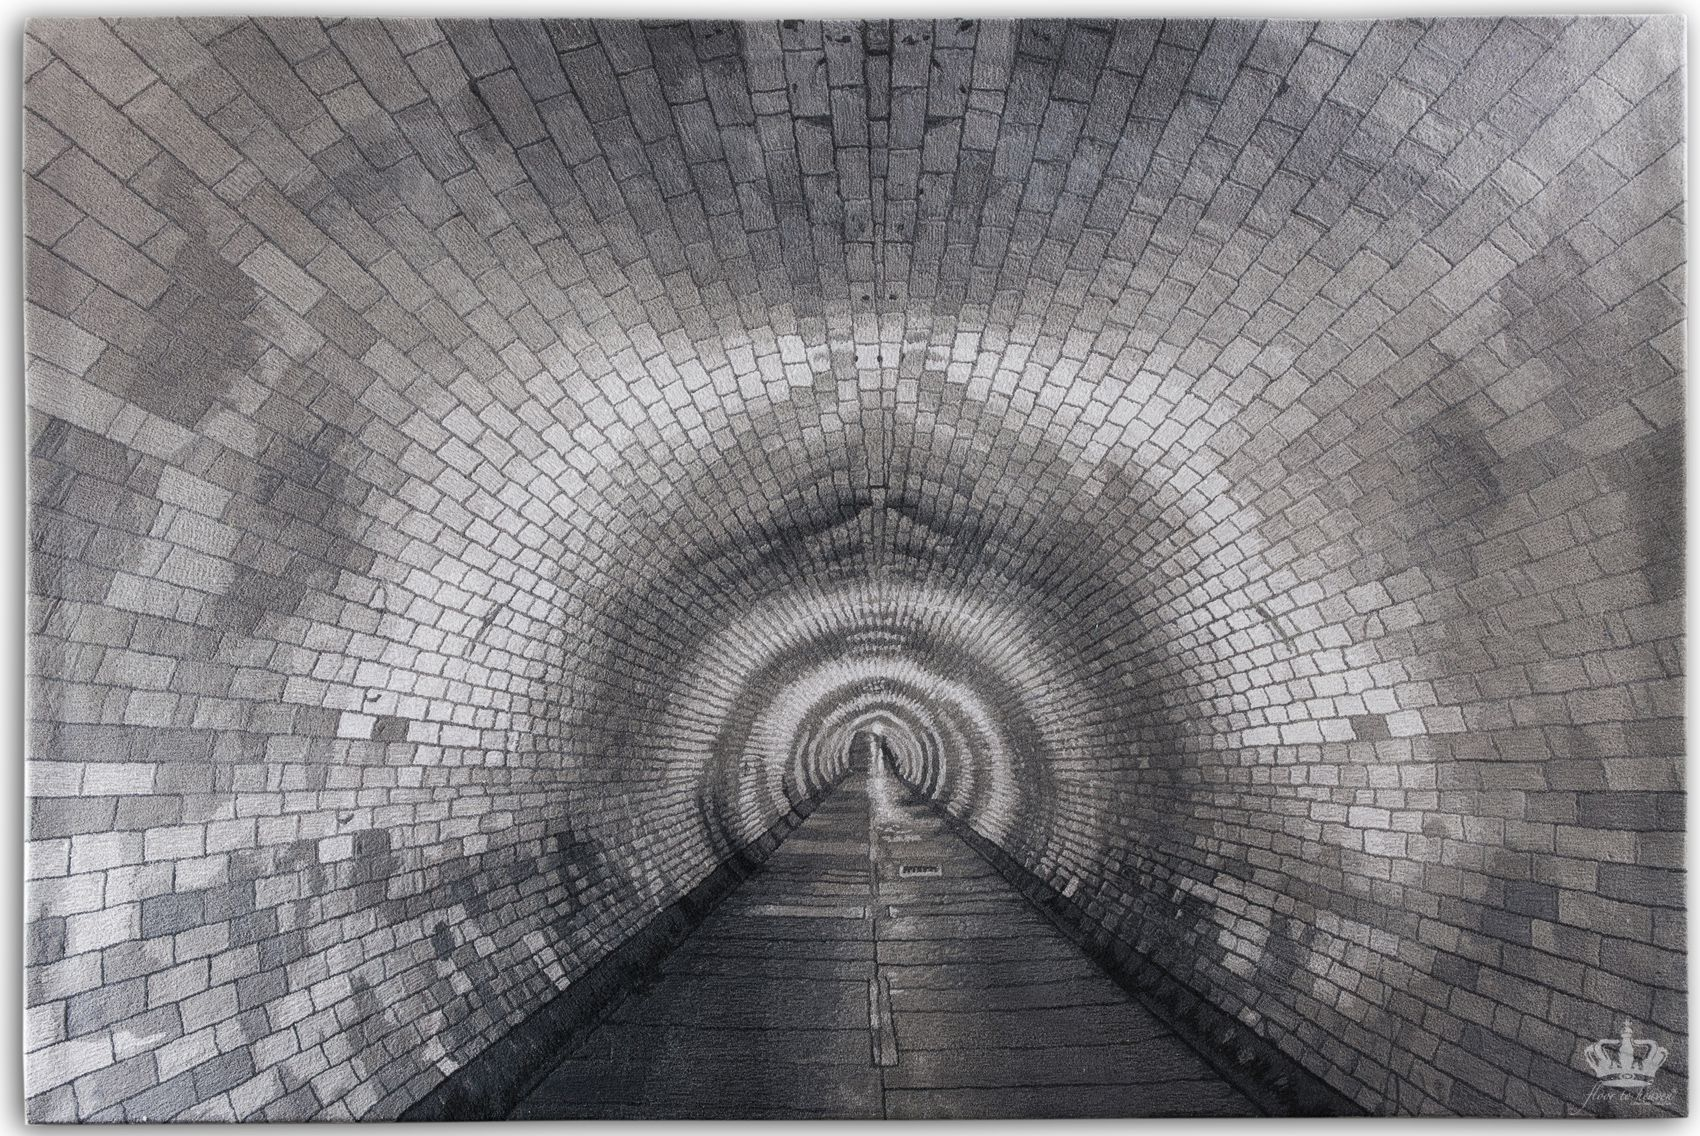 collections/front-ms-tunnel-1a.jpg